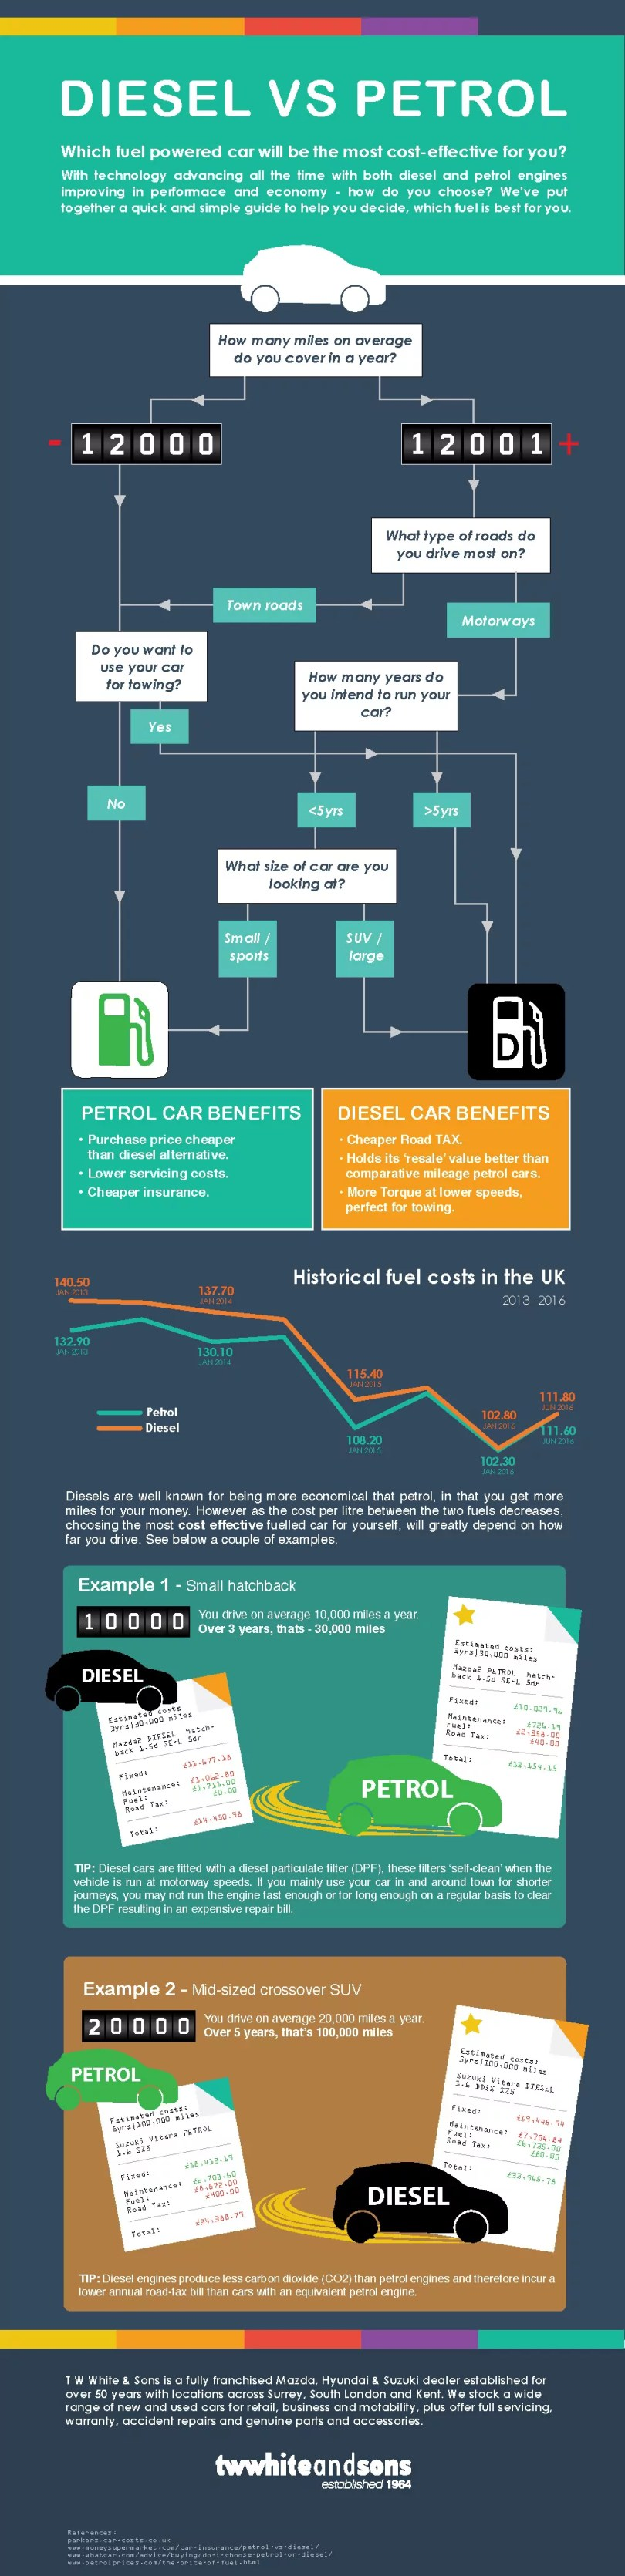 Diesel or Petrol infographic - which car do I buy?